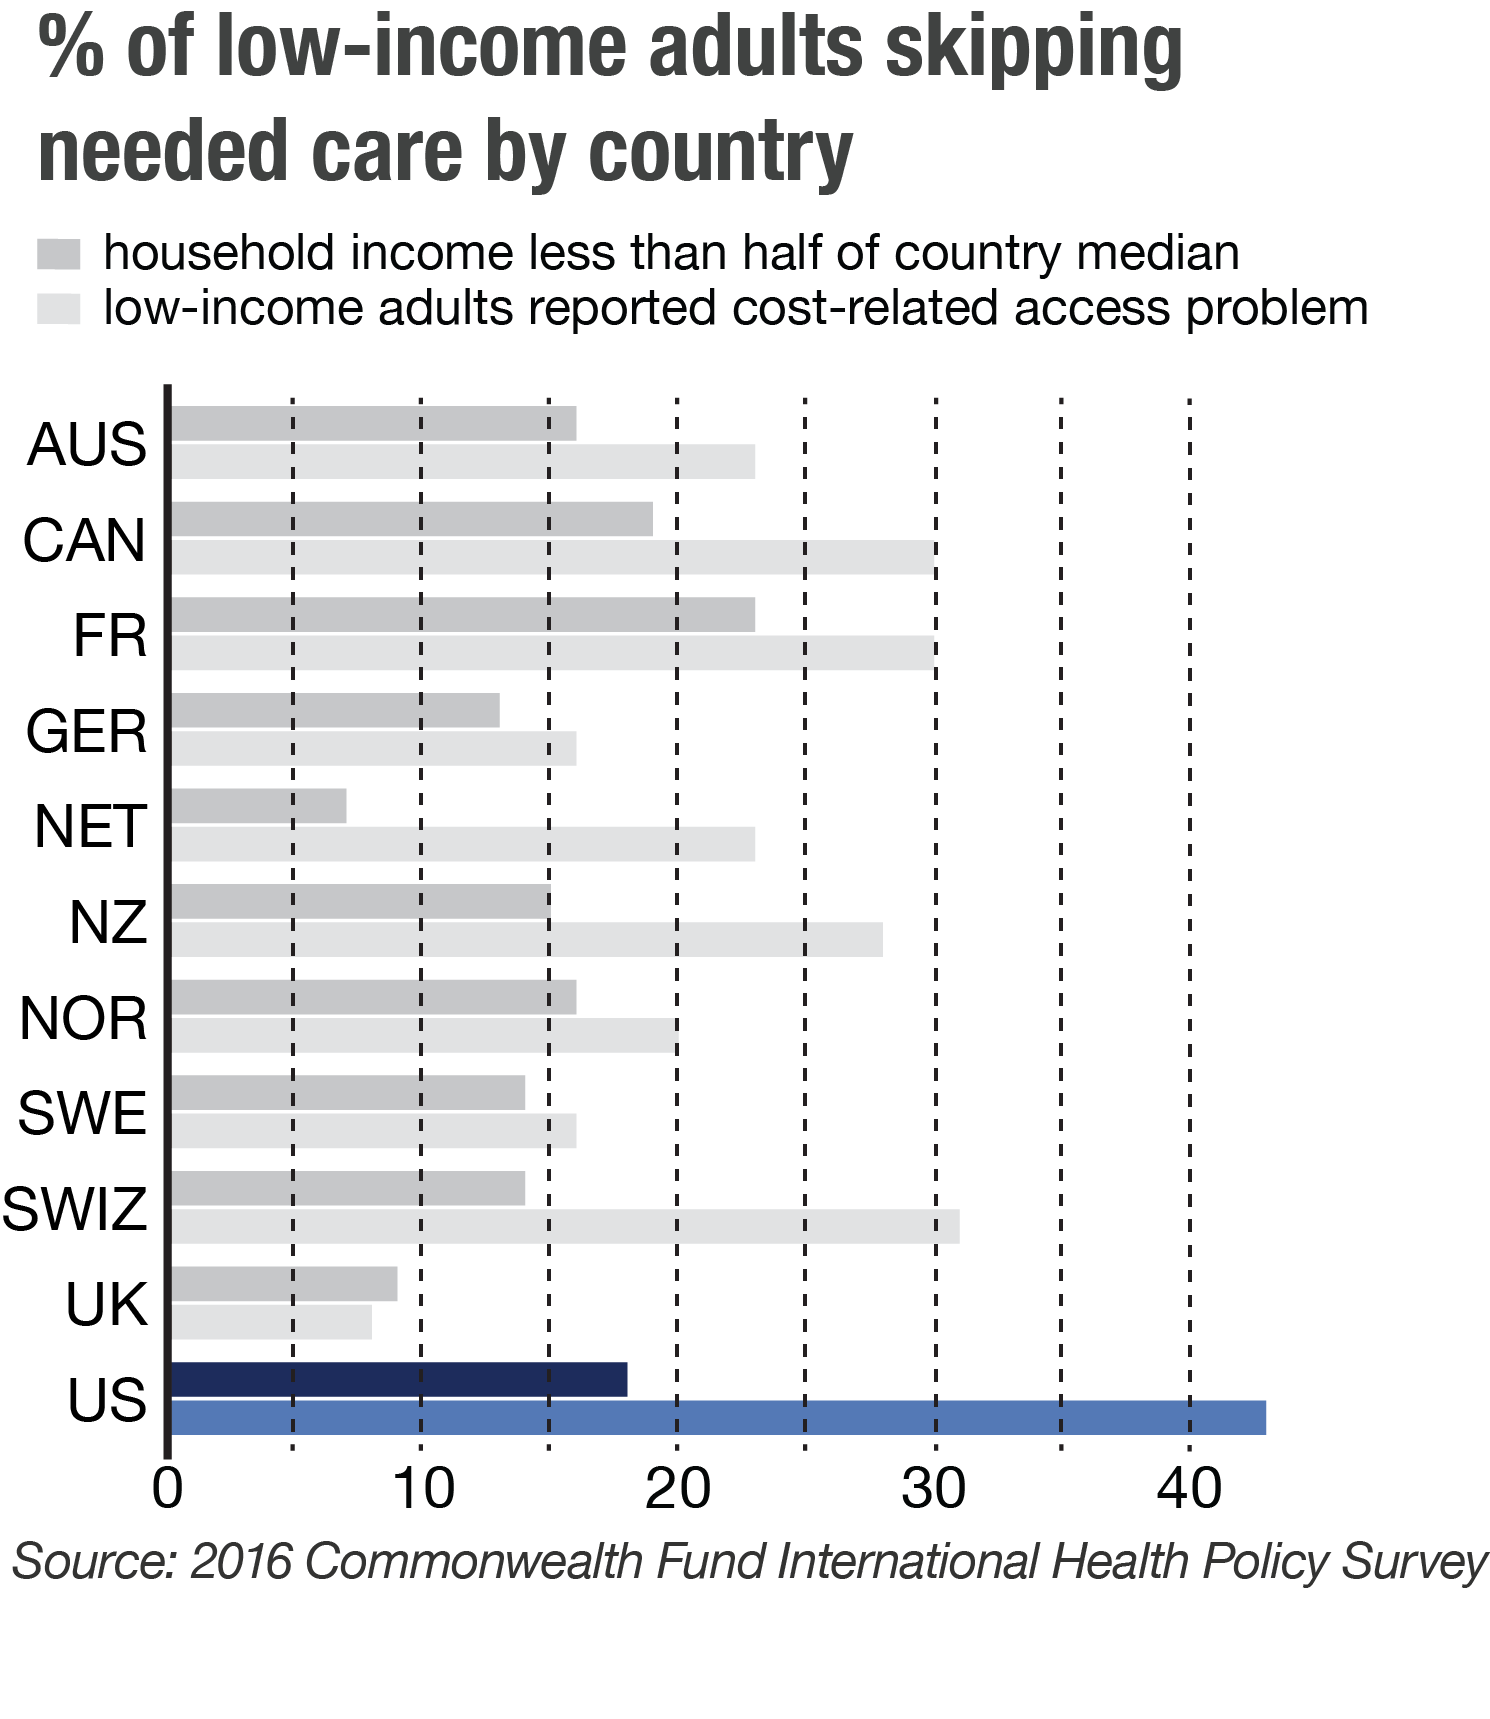 Americans are sicker, skip care more than citizens of other high